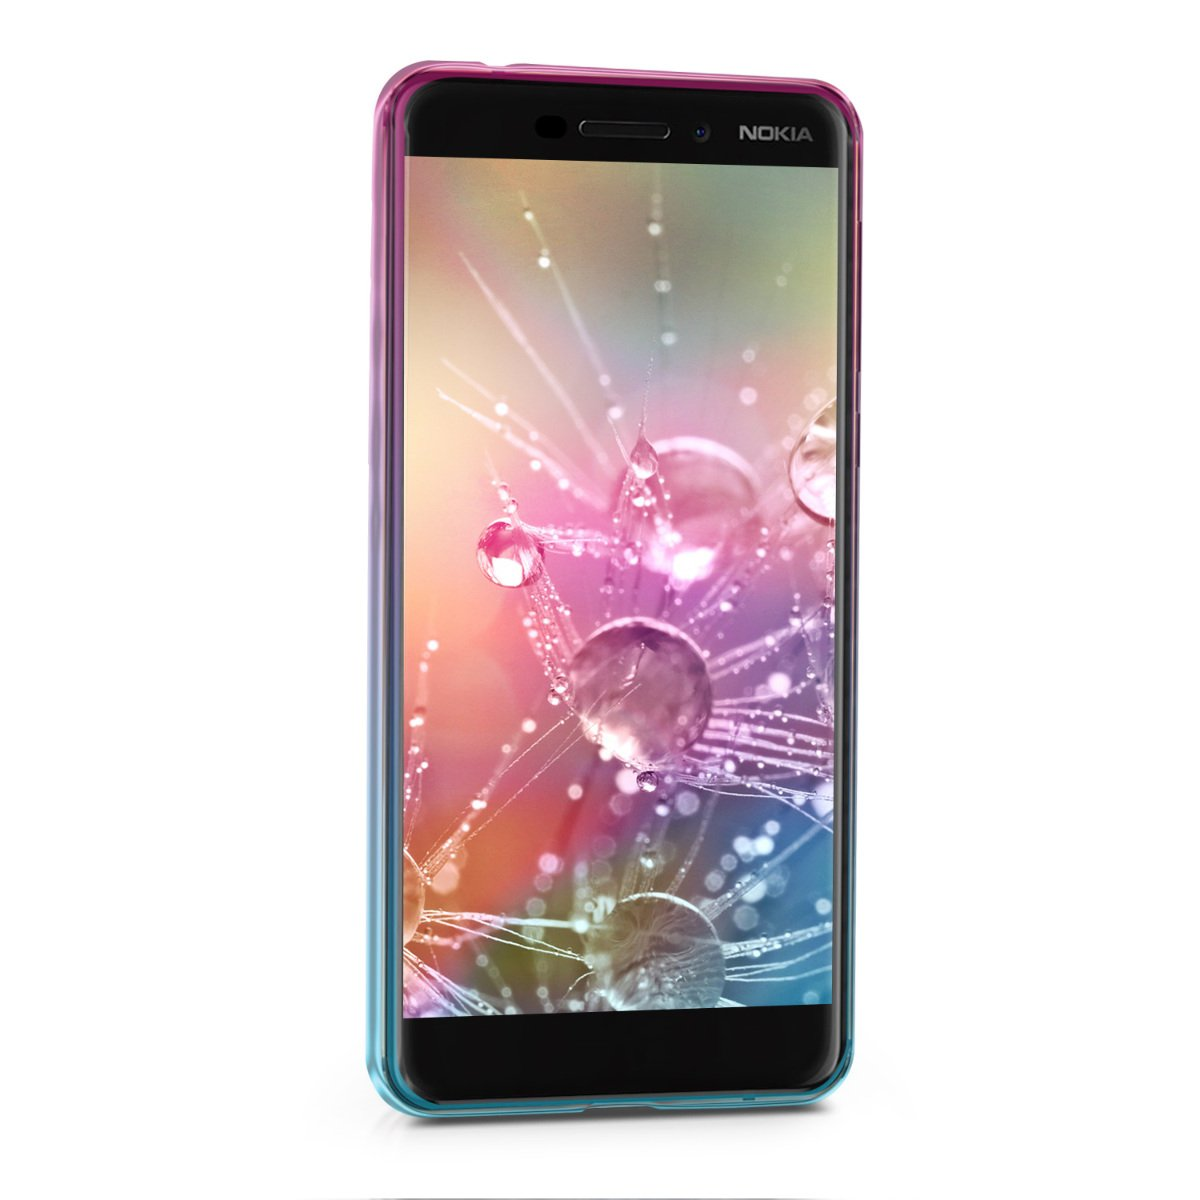 kwmobile Case for Nokia 6.1 (2018) - Clear TPU Soft Phone Cover - Bicolor Design, Dark Pink/Blue/Transparent